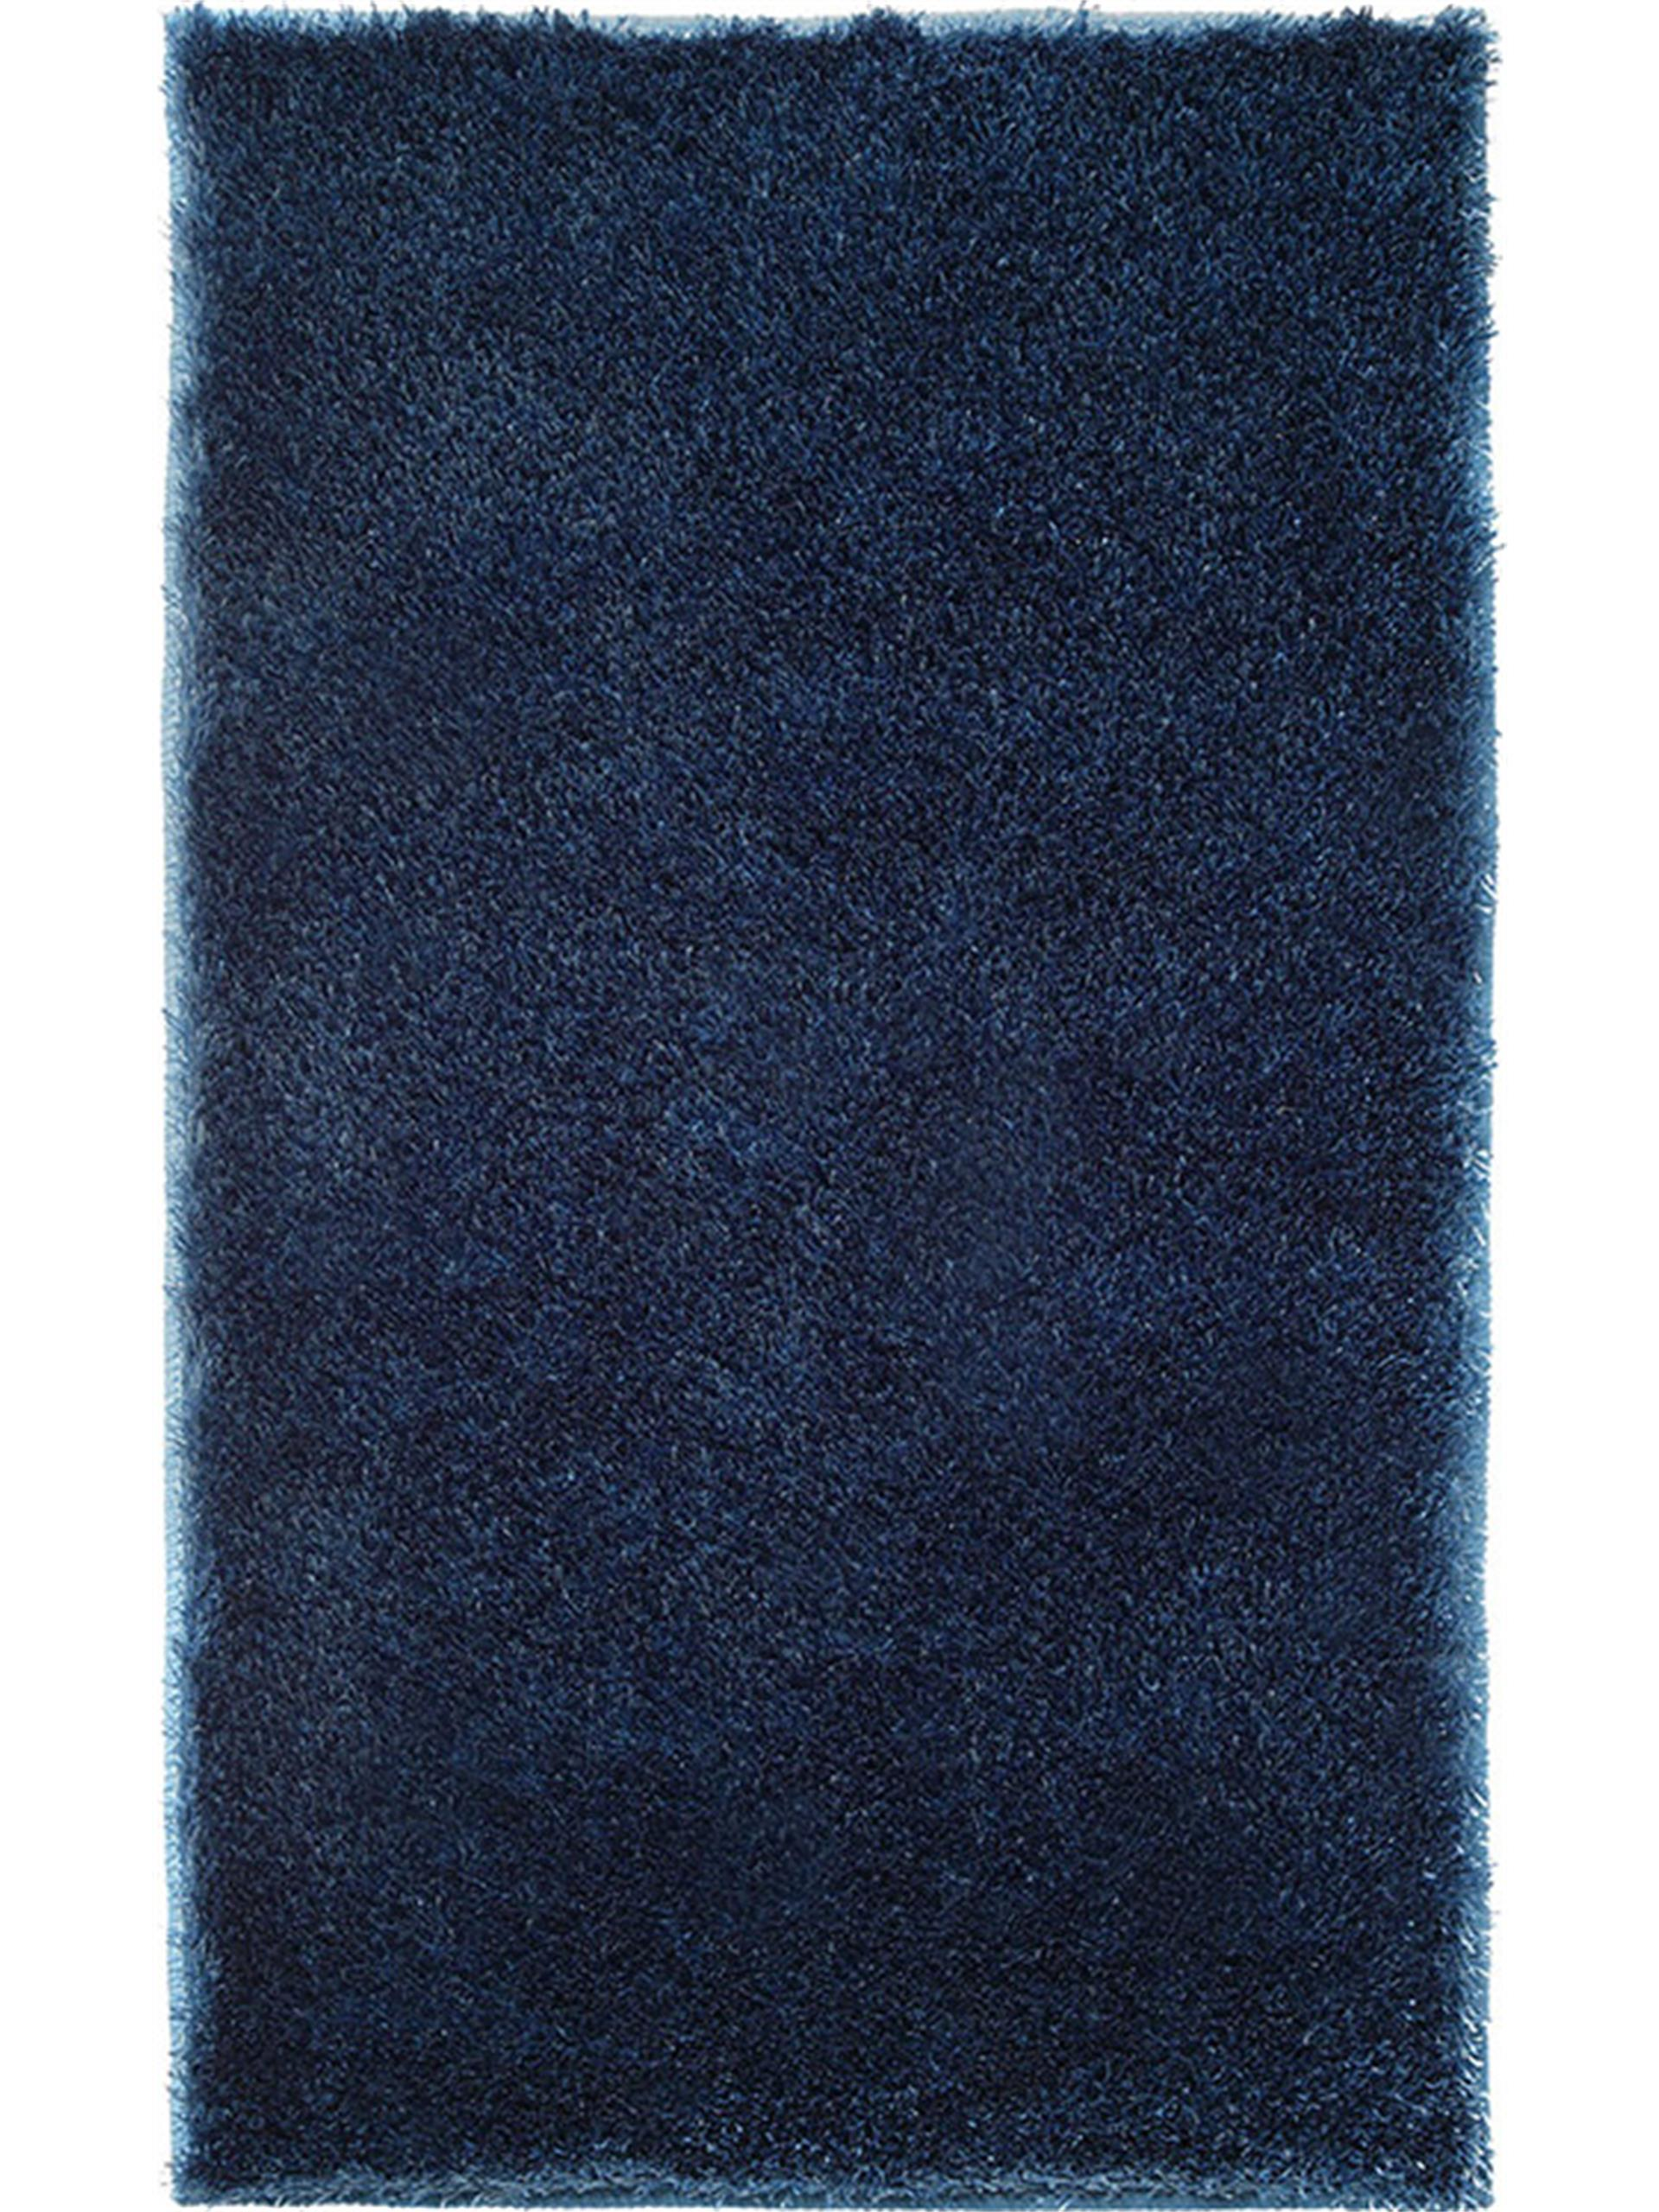 esprit c tapis de bain chill bleu 60x100 cm. Black Bedroom Furniture Sets. Home Design Ideas